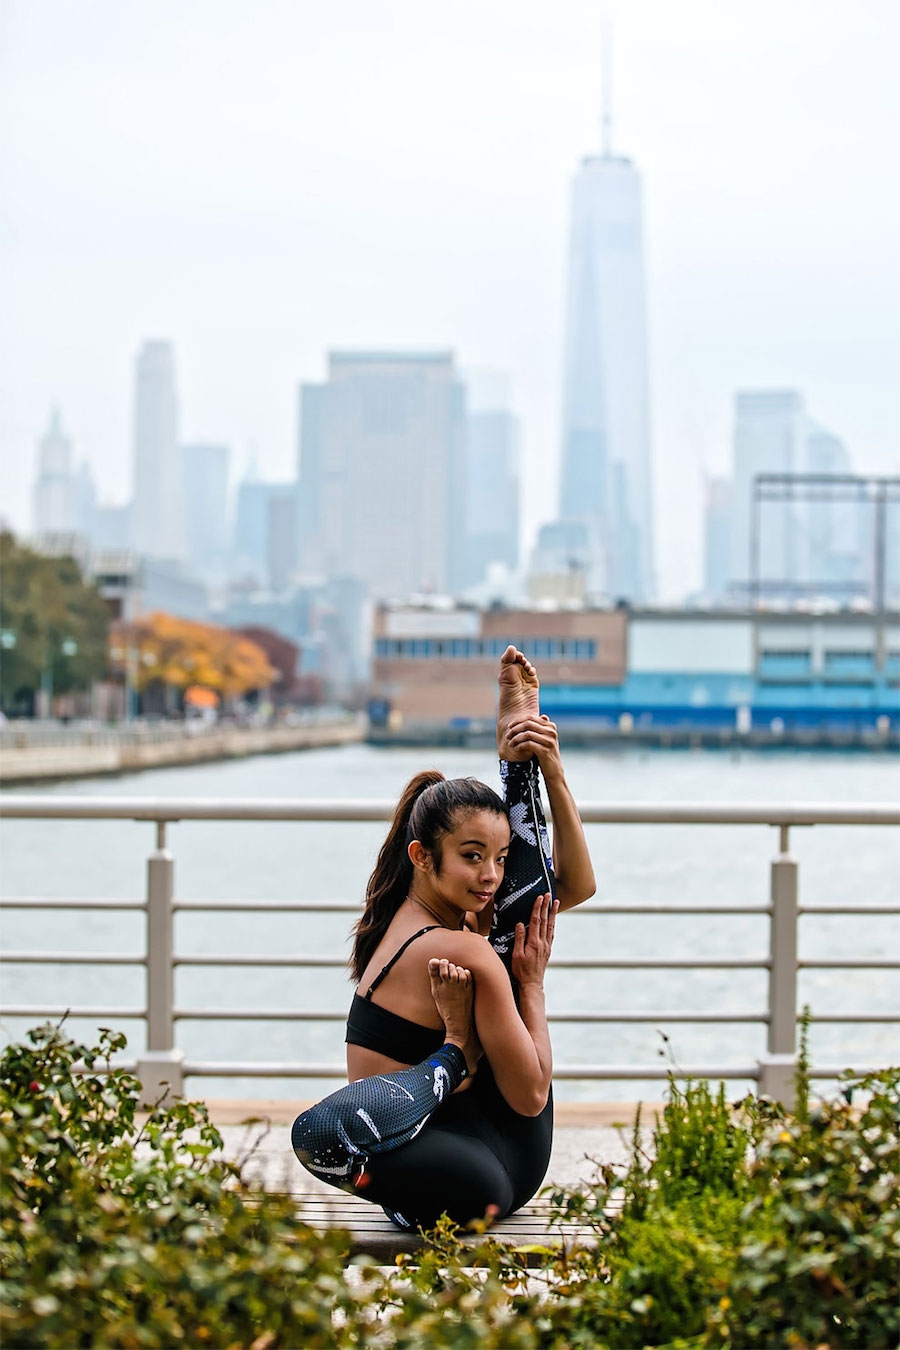 belle-pose-yoga-londra-new-york-kristina-kashtanova-03